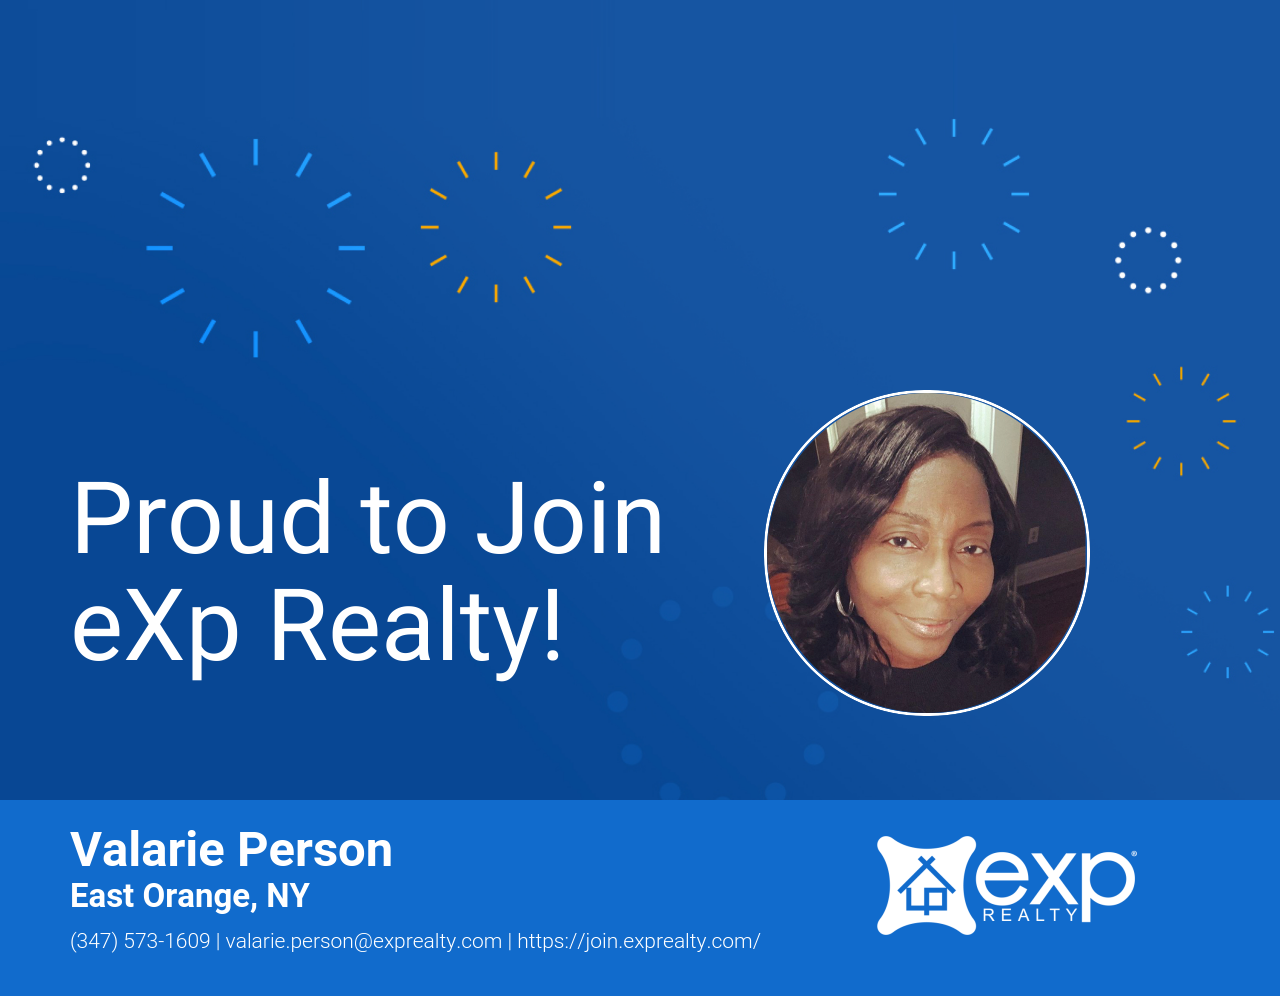 eXp Realty Welcomes Valarie Person!